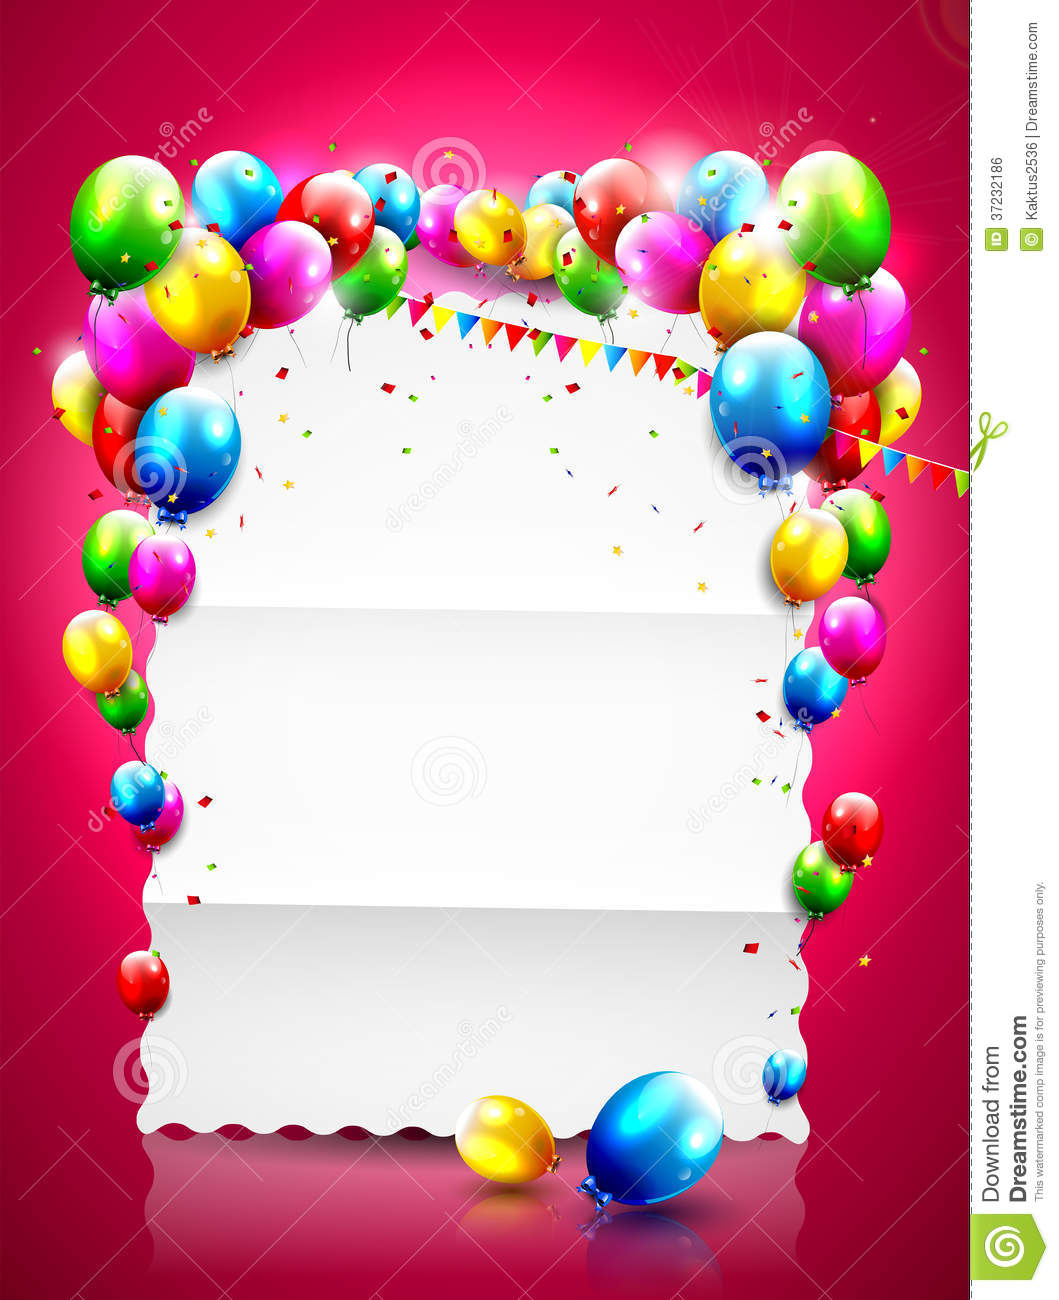 Birthday background stock vector. Illustration of bright - 37232186